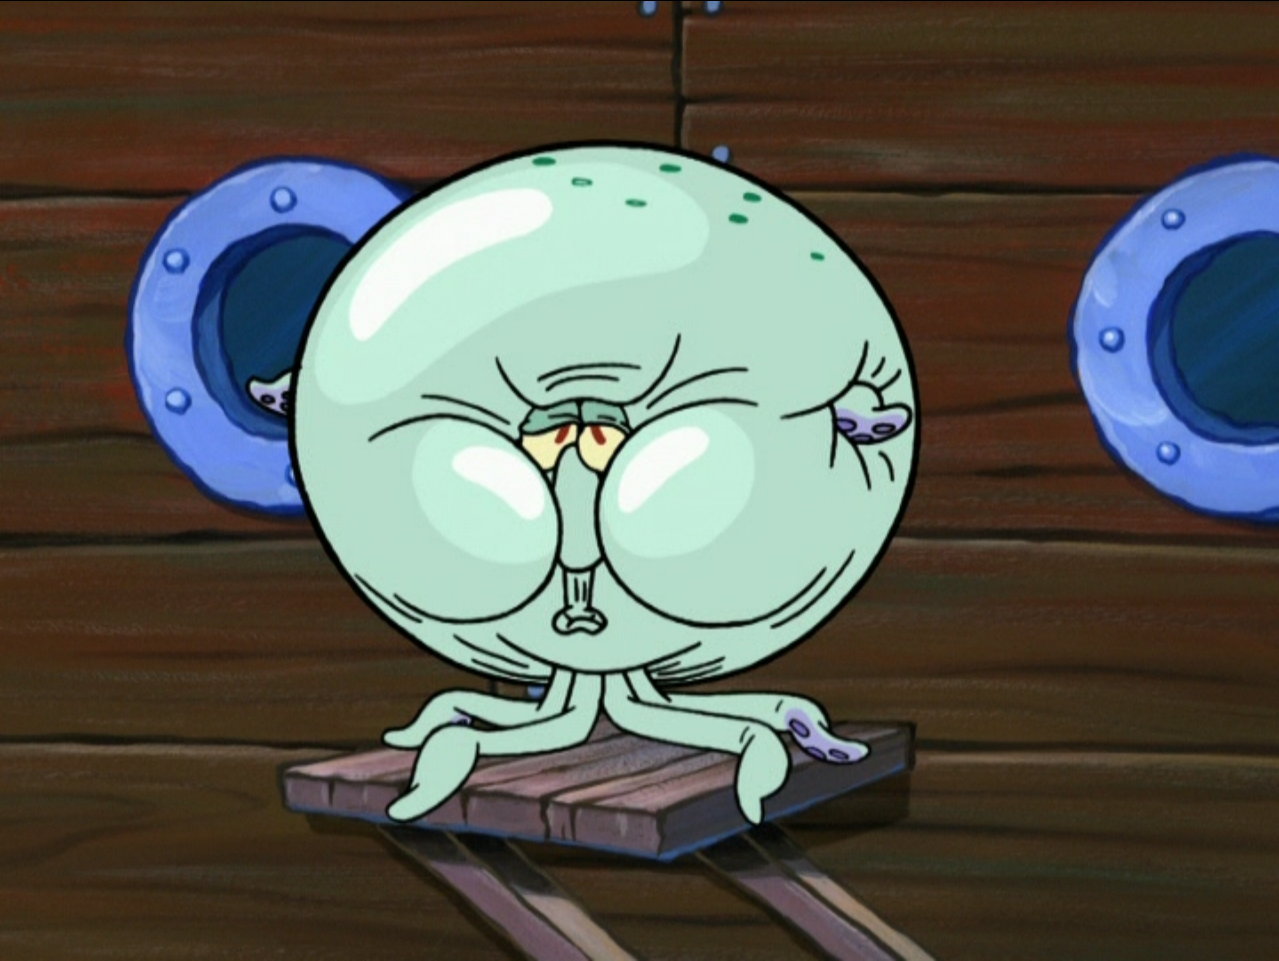 riseandshine screenshot 13png. brilliant screenshot squidward in beast form intended riseandshine screenshot 13png